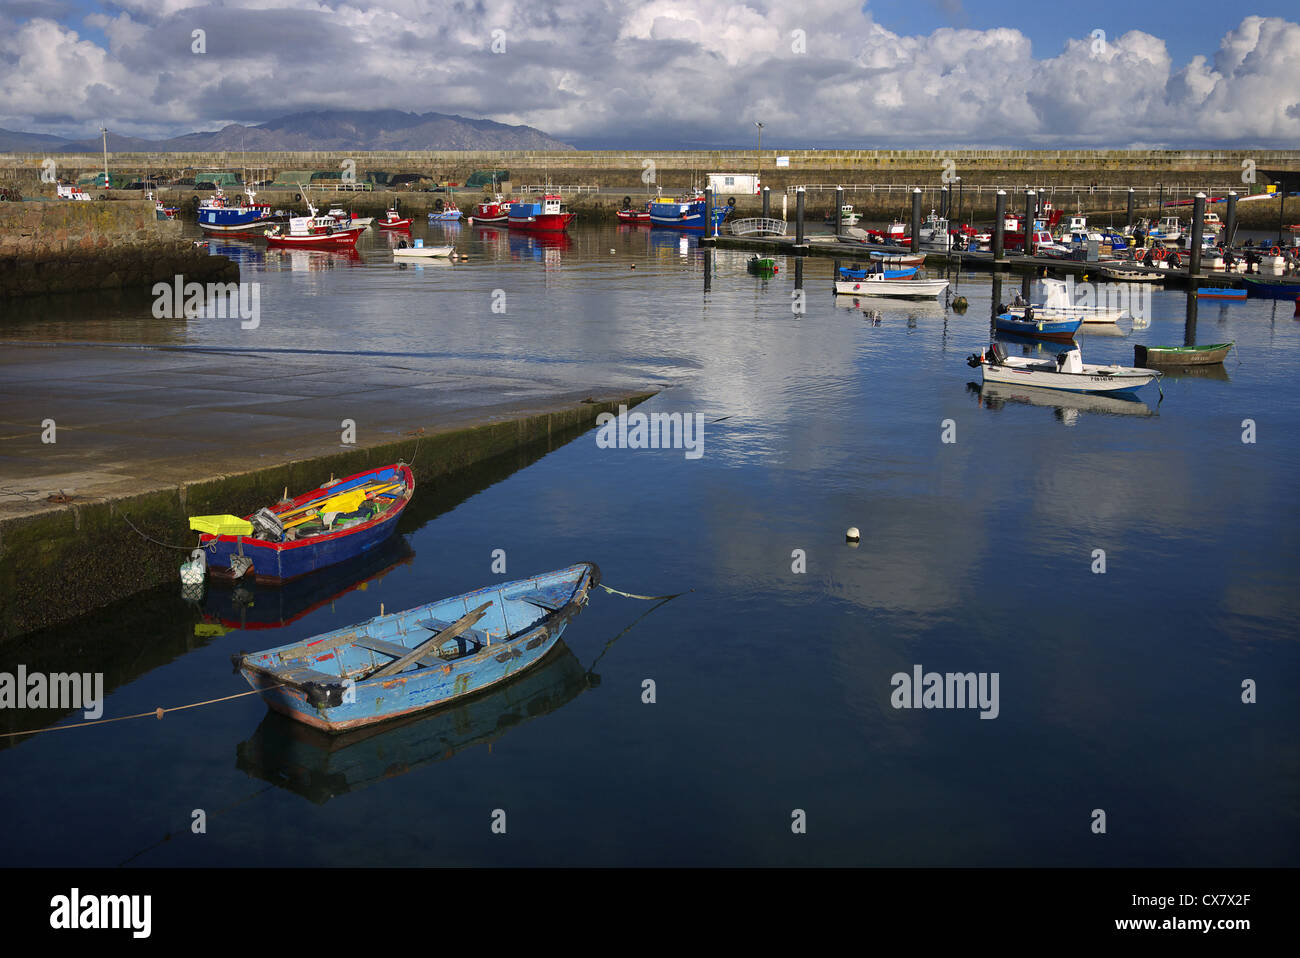 The harbour at Finisterre, Galicia, Spain. - Stock Image